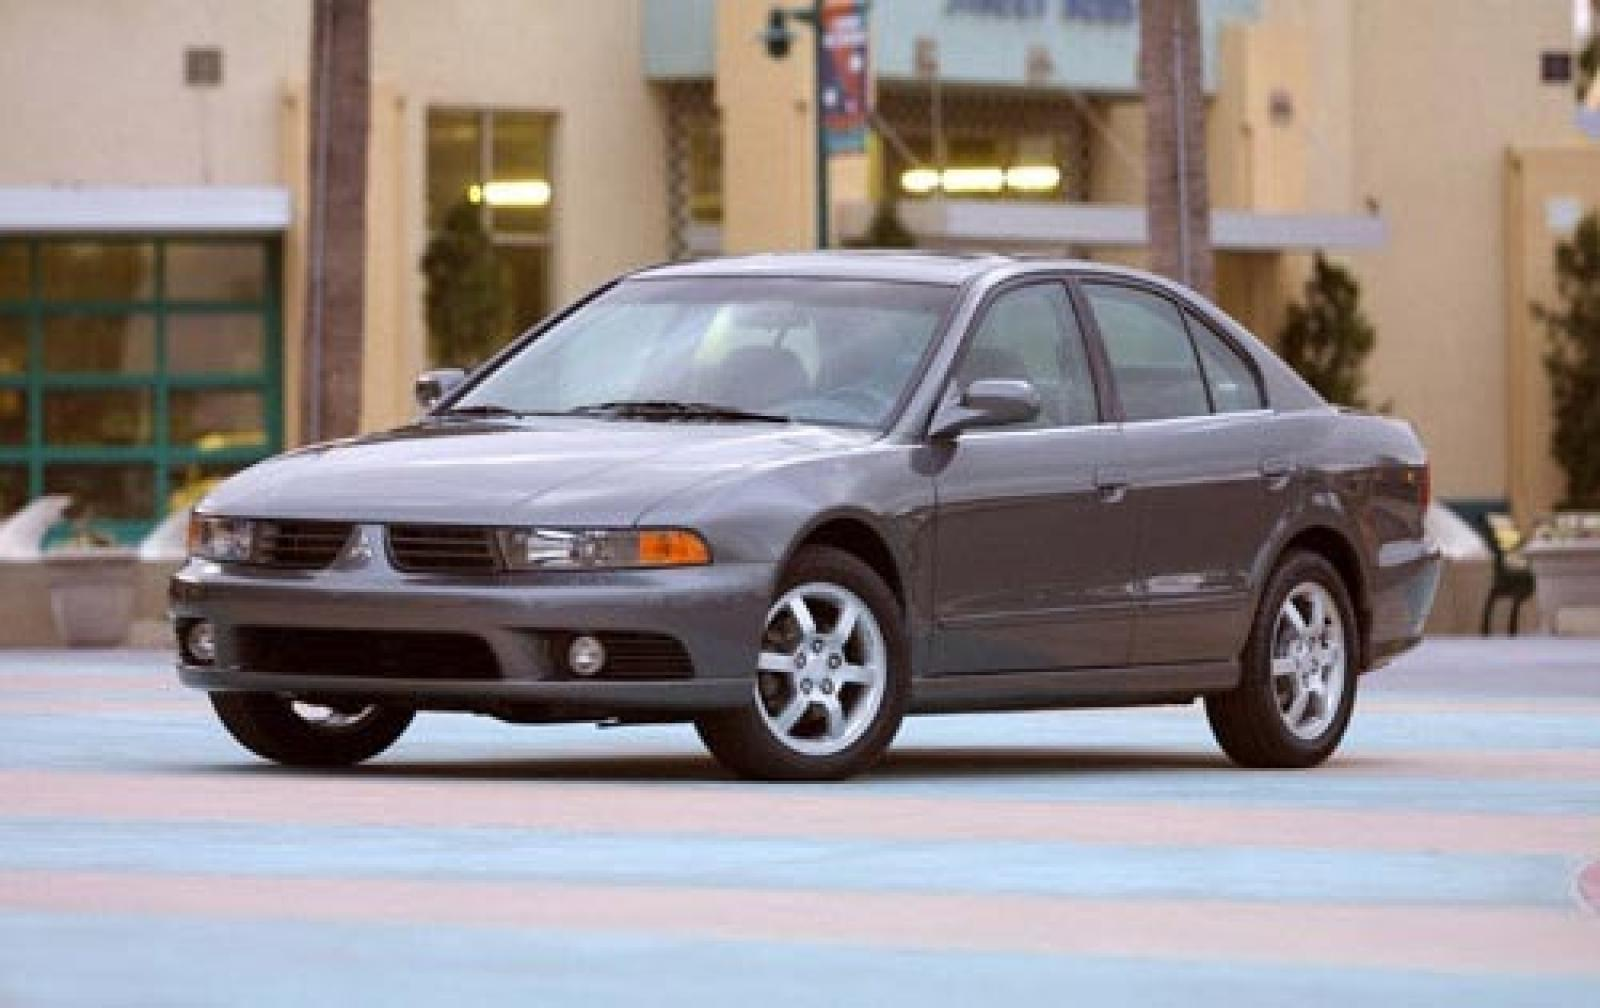 2003 mitsubishi galant information and photos zombiedrive. Black Bedroom Furniture Sets. Home Design Ideas